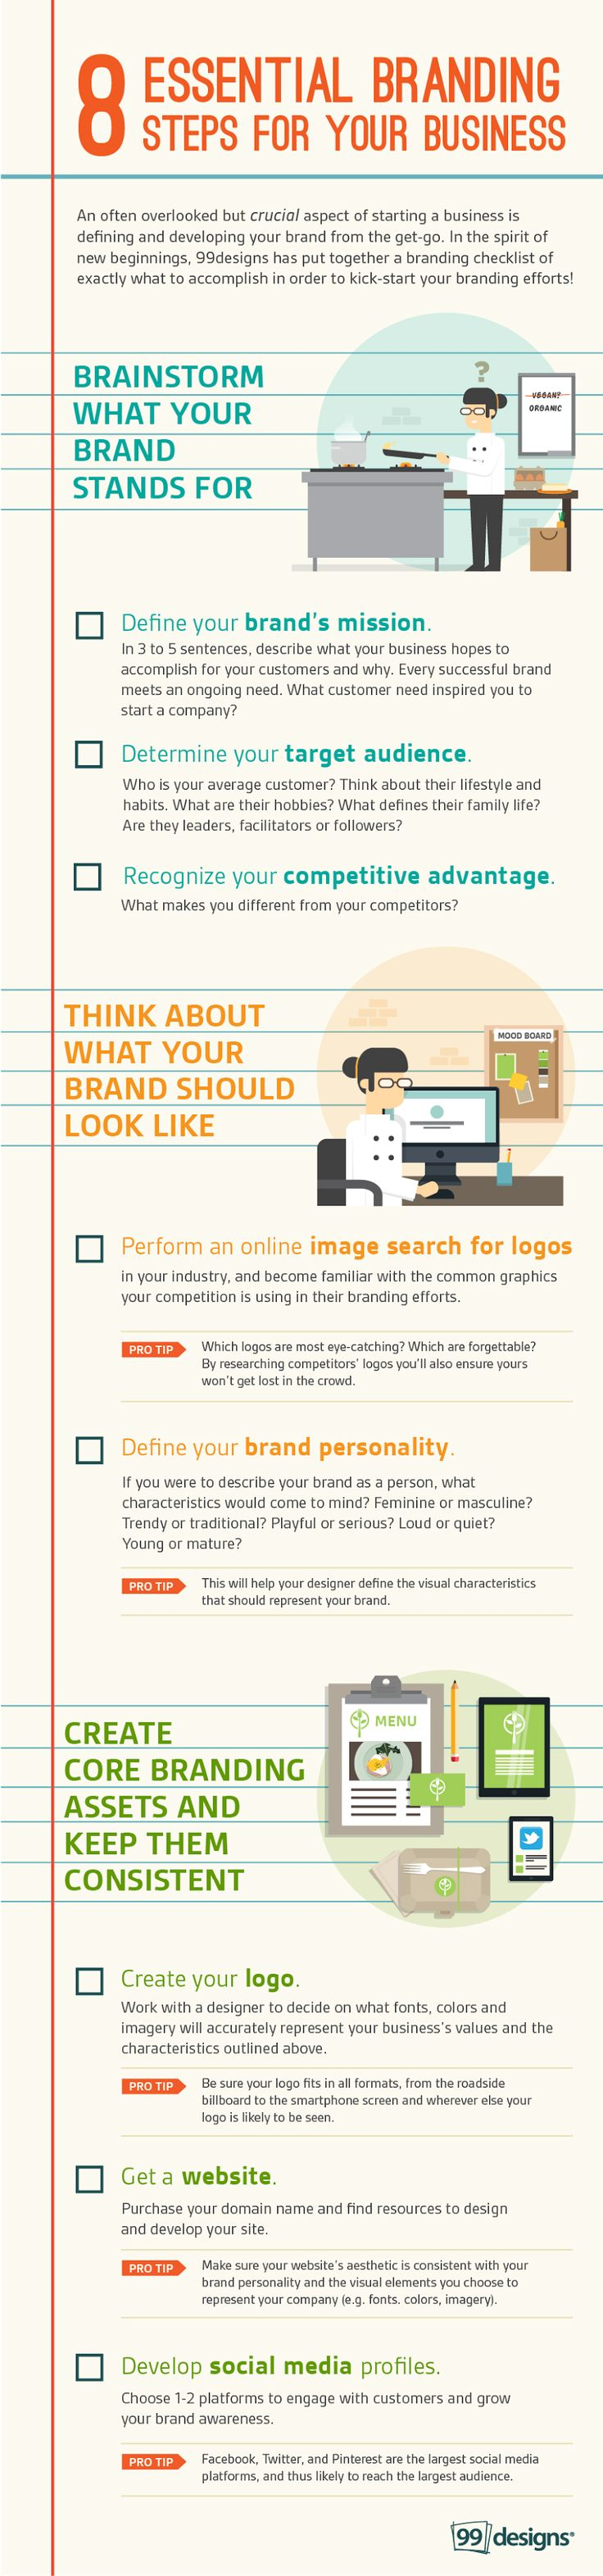 8 Essential Branding Steps for Your Business [Infographic]